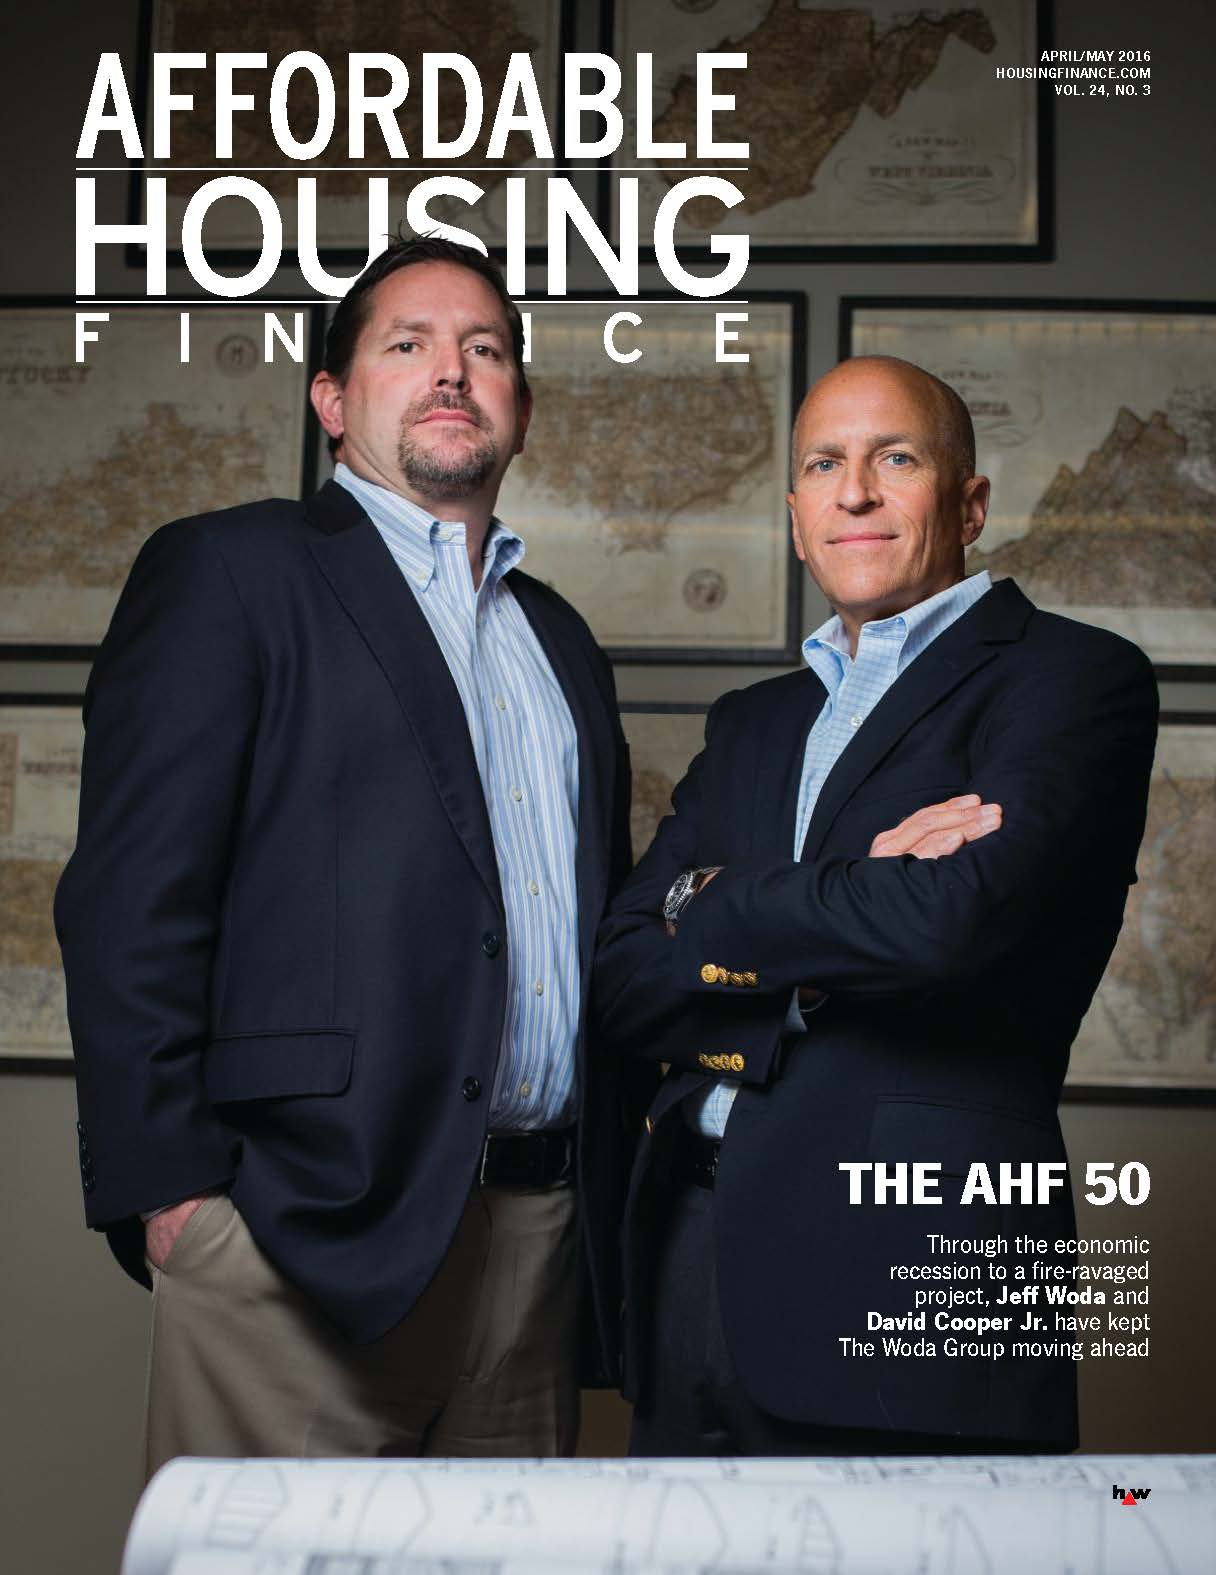 - Madhouse named one of the Top 50 Affordable Housing Developers of 2015.